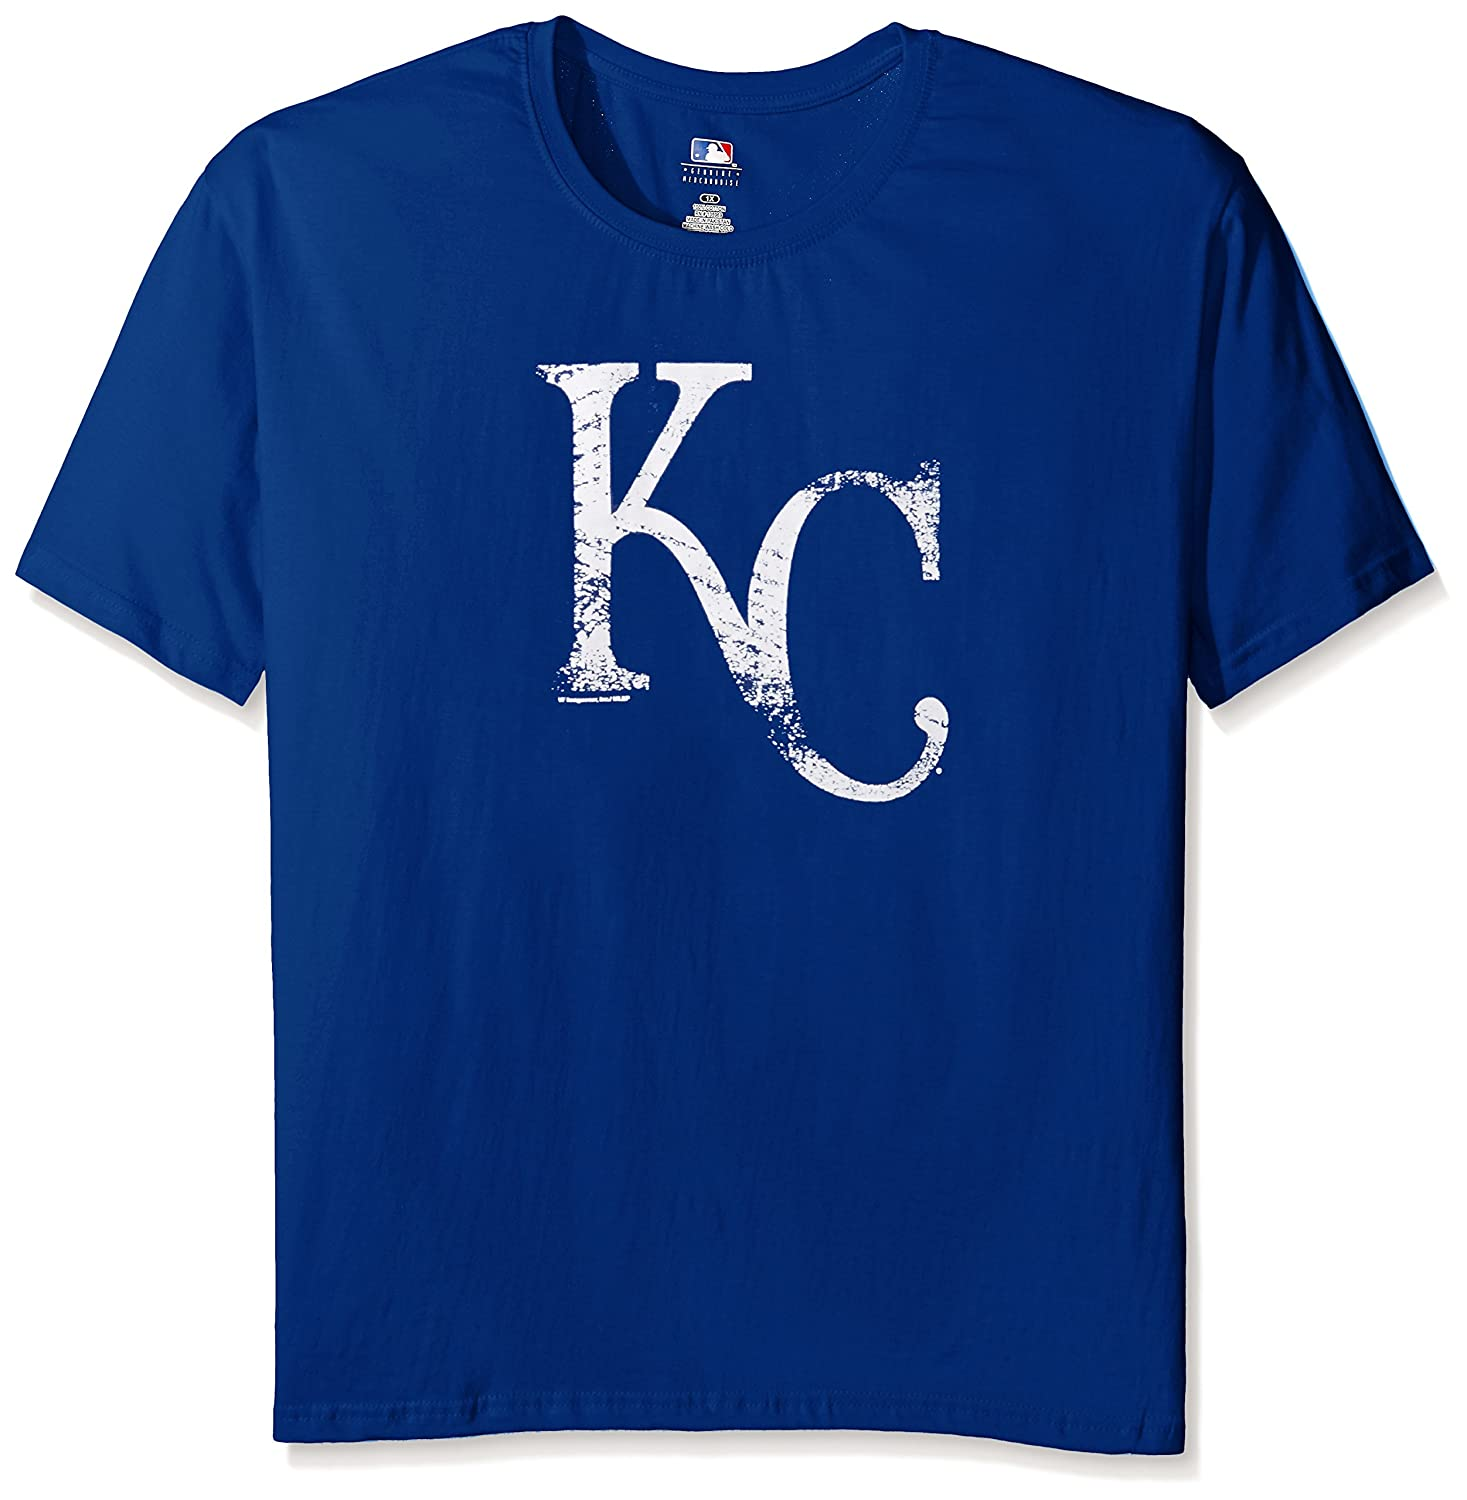 最高 MLB Kansas City RoyalsレディースTeam Short Sleeved画面Tシャツ B01996X7SC、1 Kansas x Short、ロイヤル B01996X7SC, NURObySo-net:7798a94e --- a0267596.xsph.ru